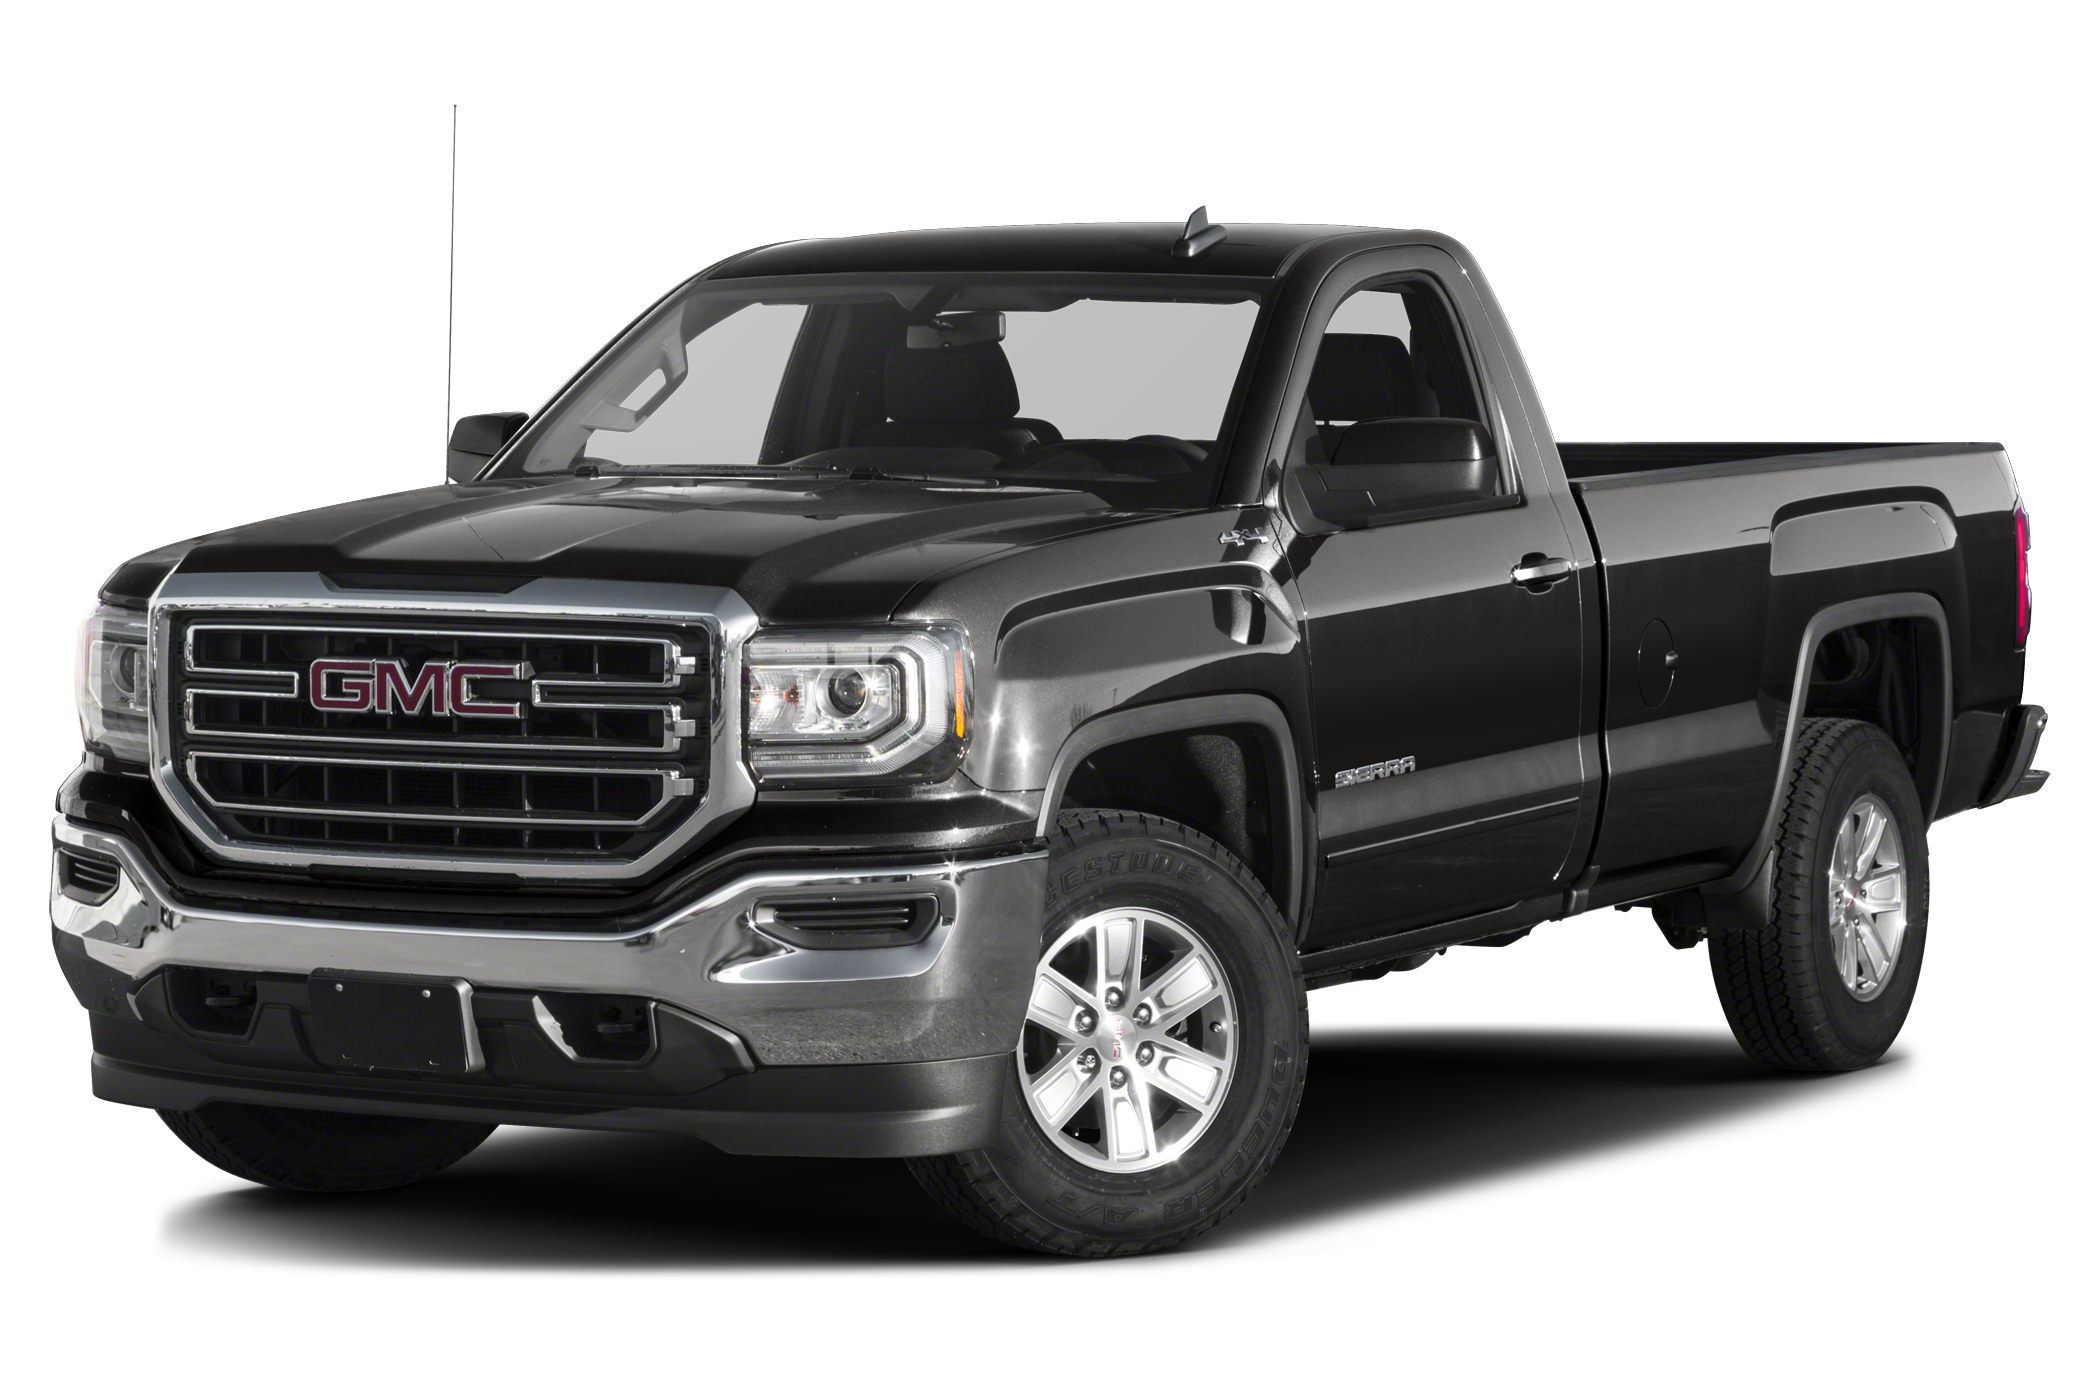 Gm Invests 1 2 Billion To Build Chevy Silverado Gmc Sierra Autoblog